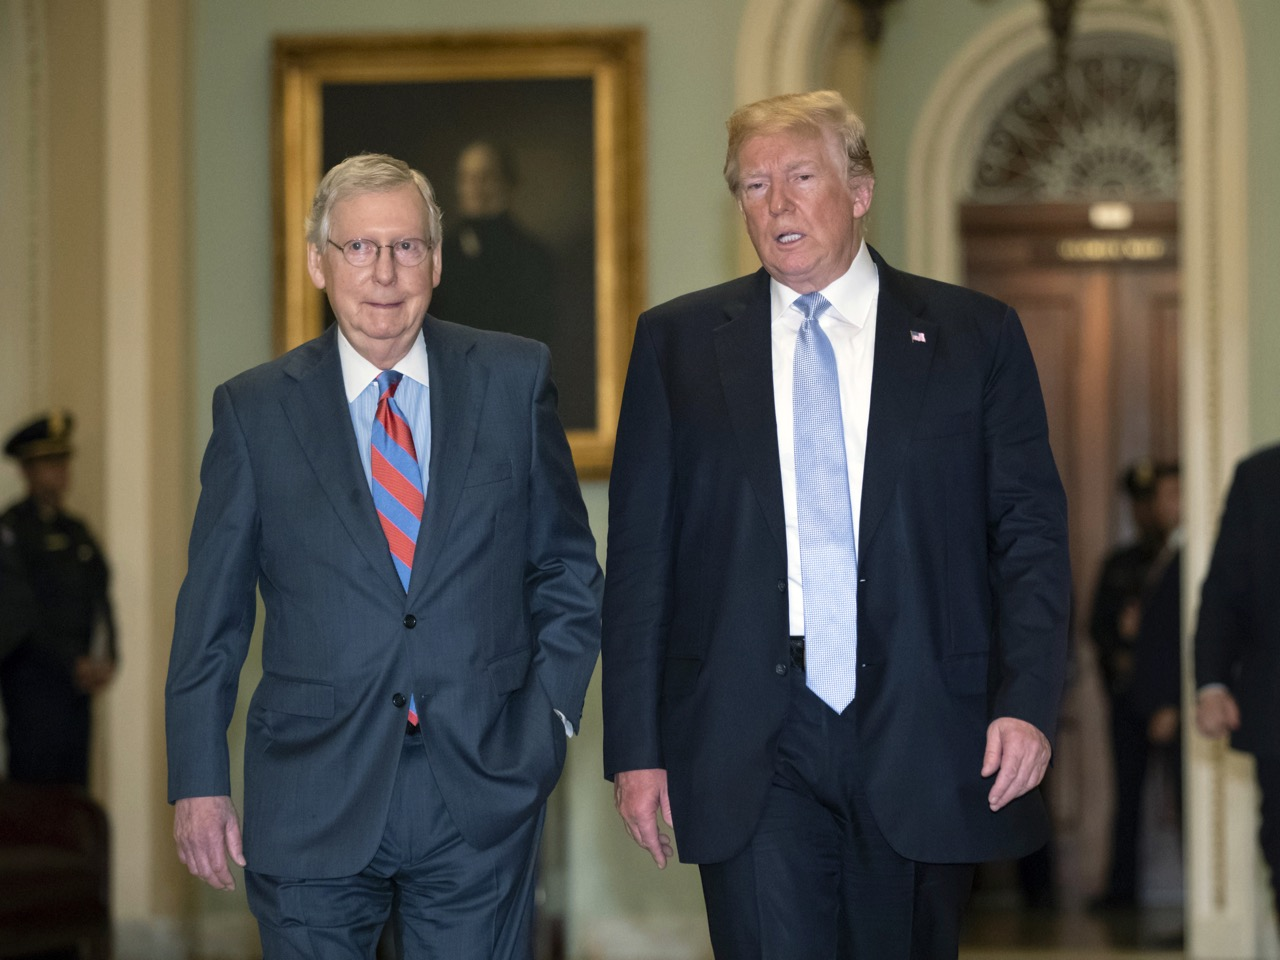 Donald Trump,Mitch McConnell